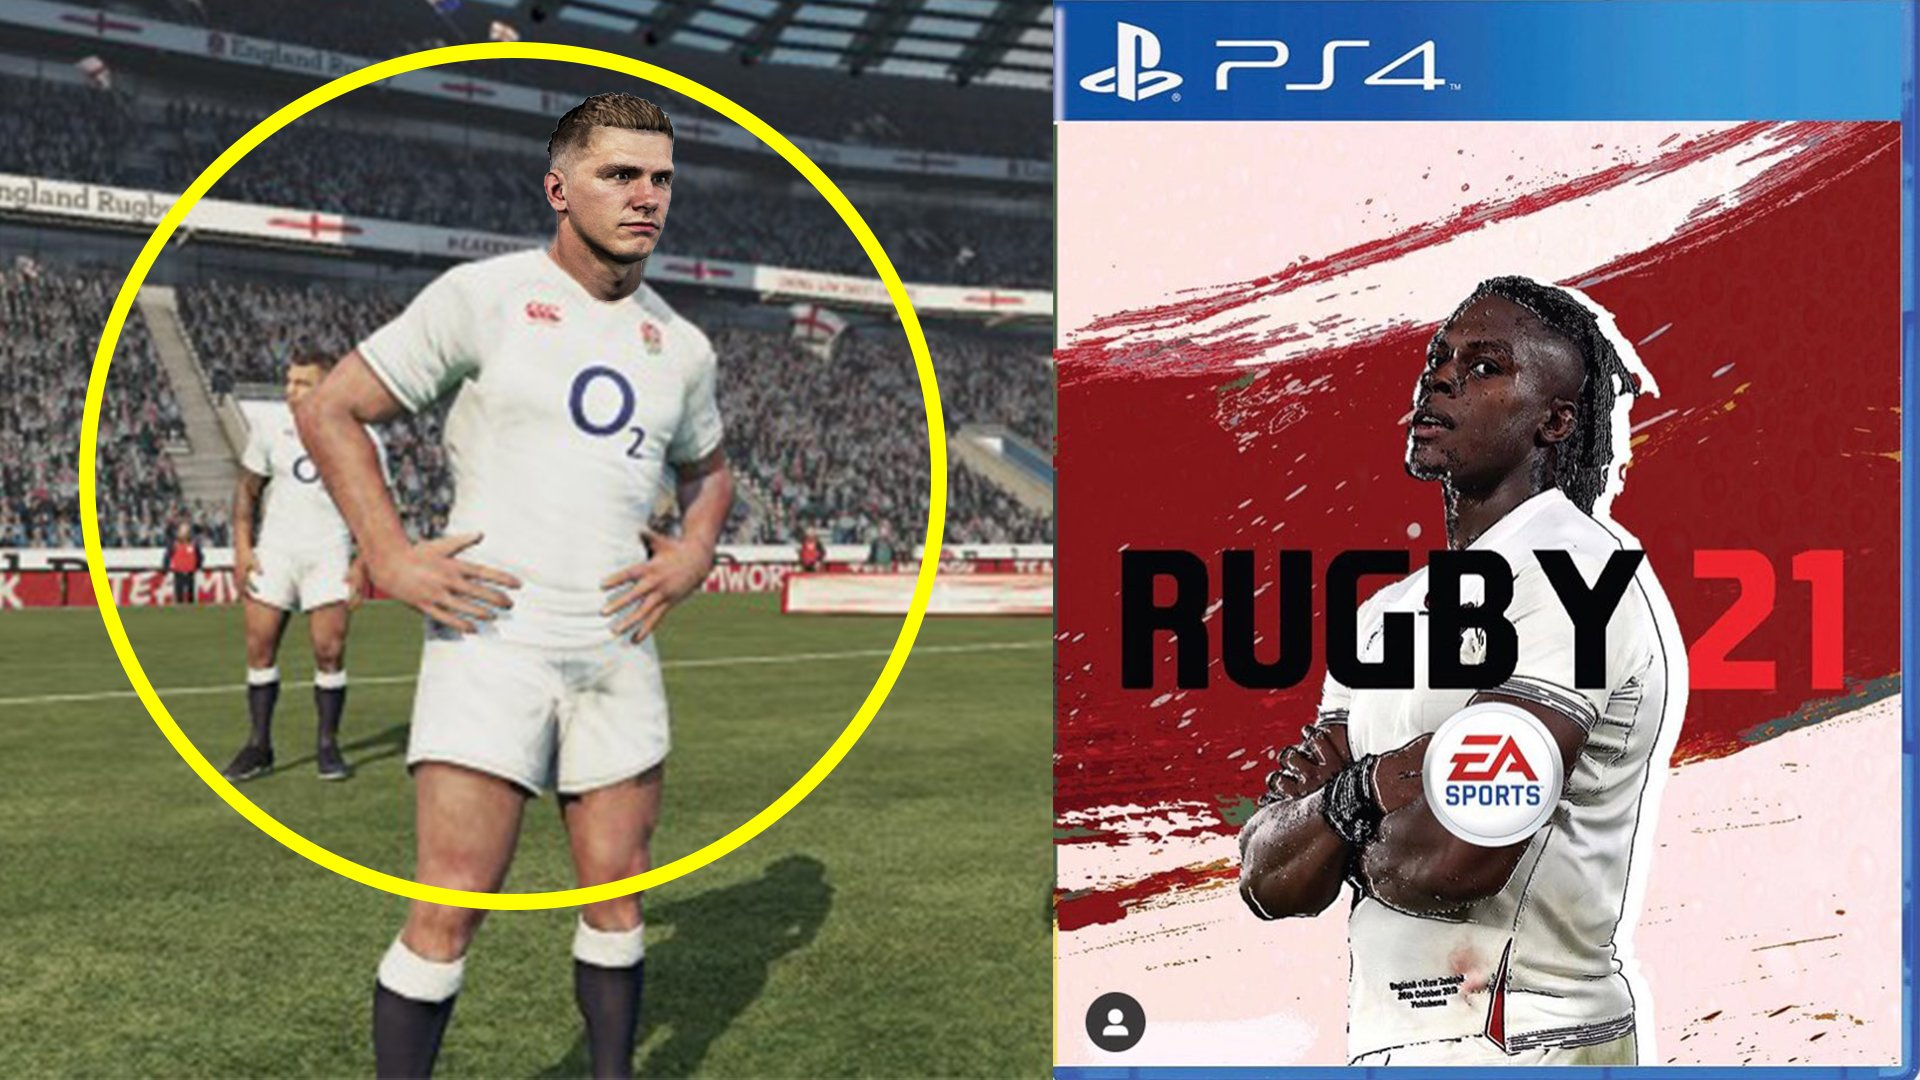 Rugby fans are losing their minds as EA SPORTS drops unannounced trailer for Rugby 21 overnight